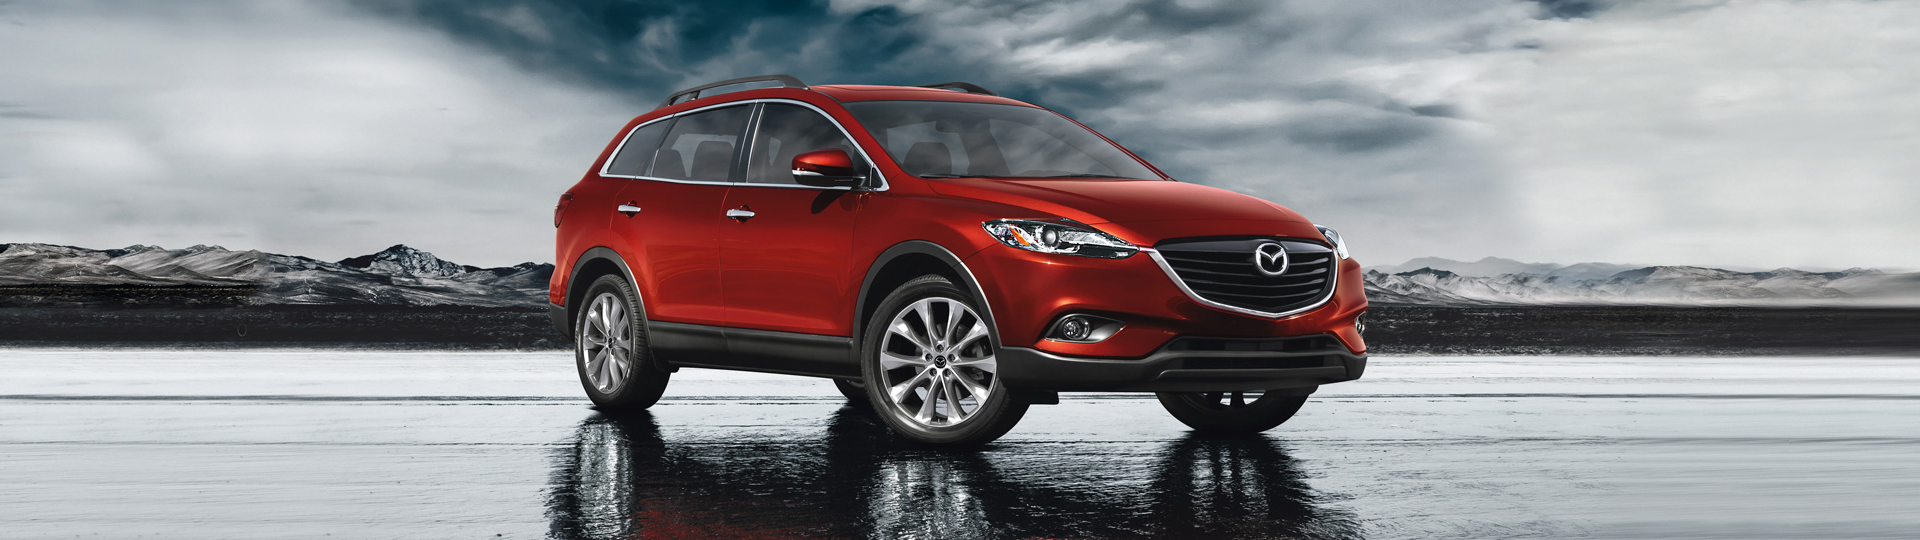 Mazda 3 Owners Manual: Warranties for Your Mazda